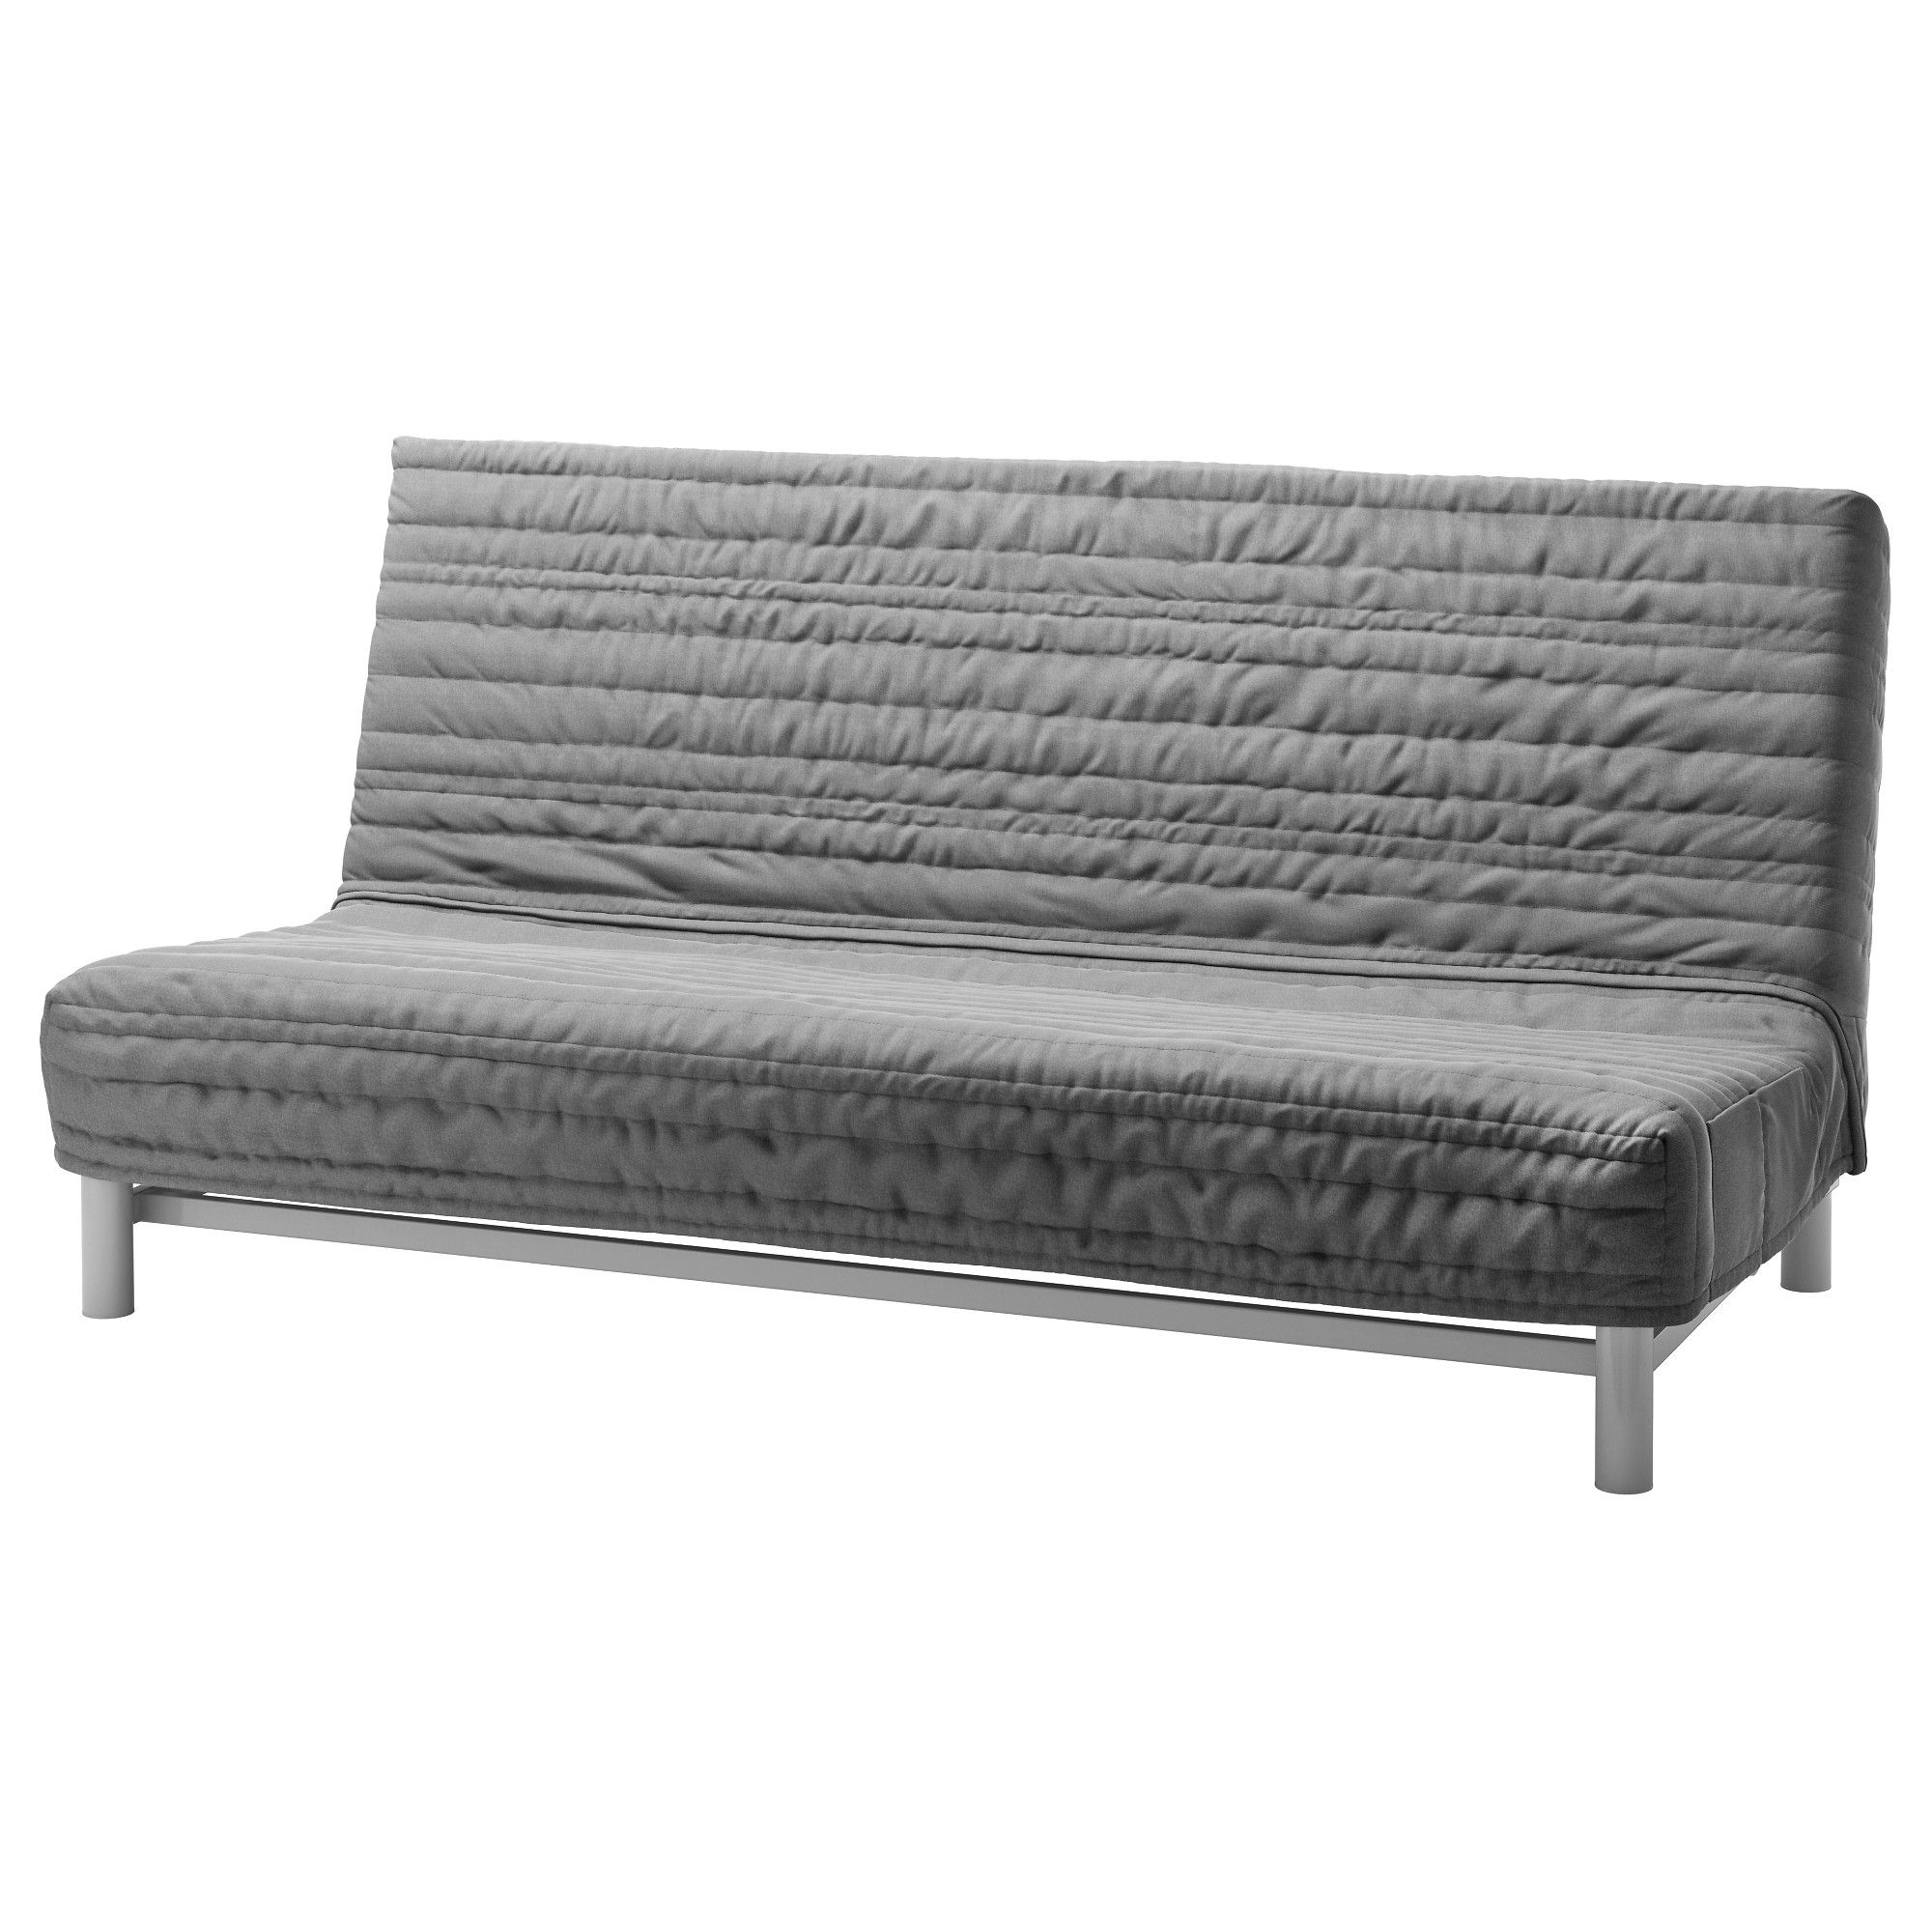 Bedbanken Outlet Ikea Beddinge LÖvÅs Sofa Bed Knisa Light Gray Extra Covers